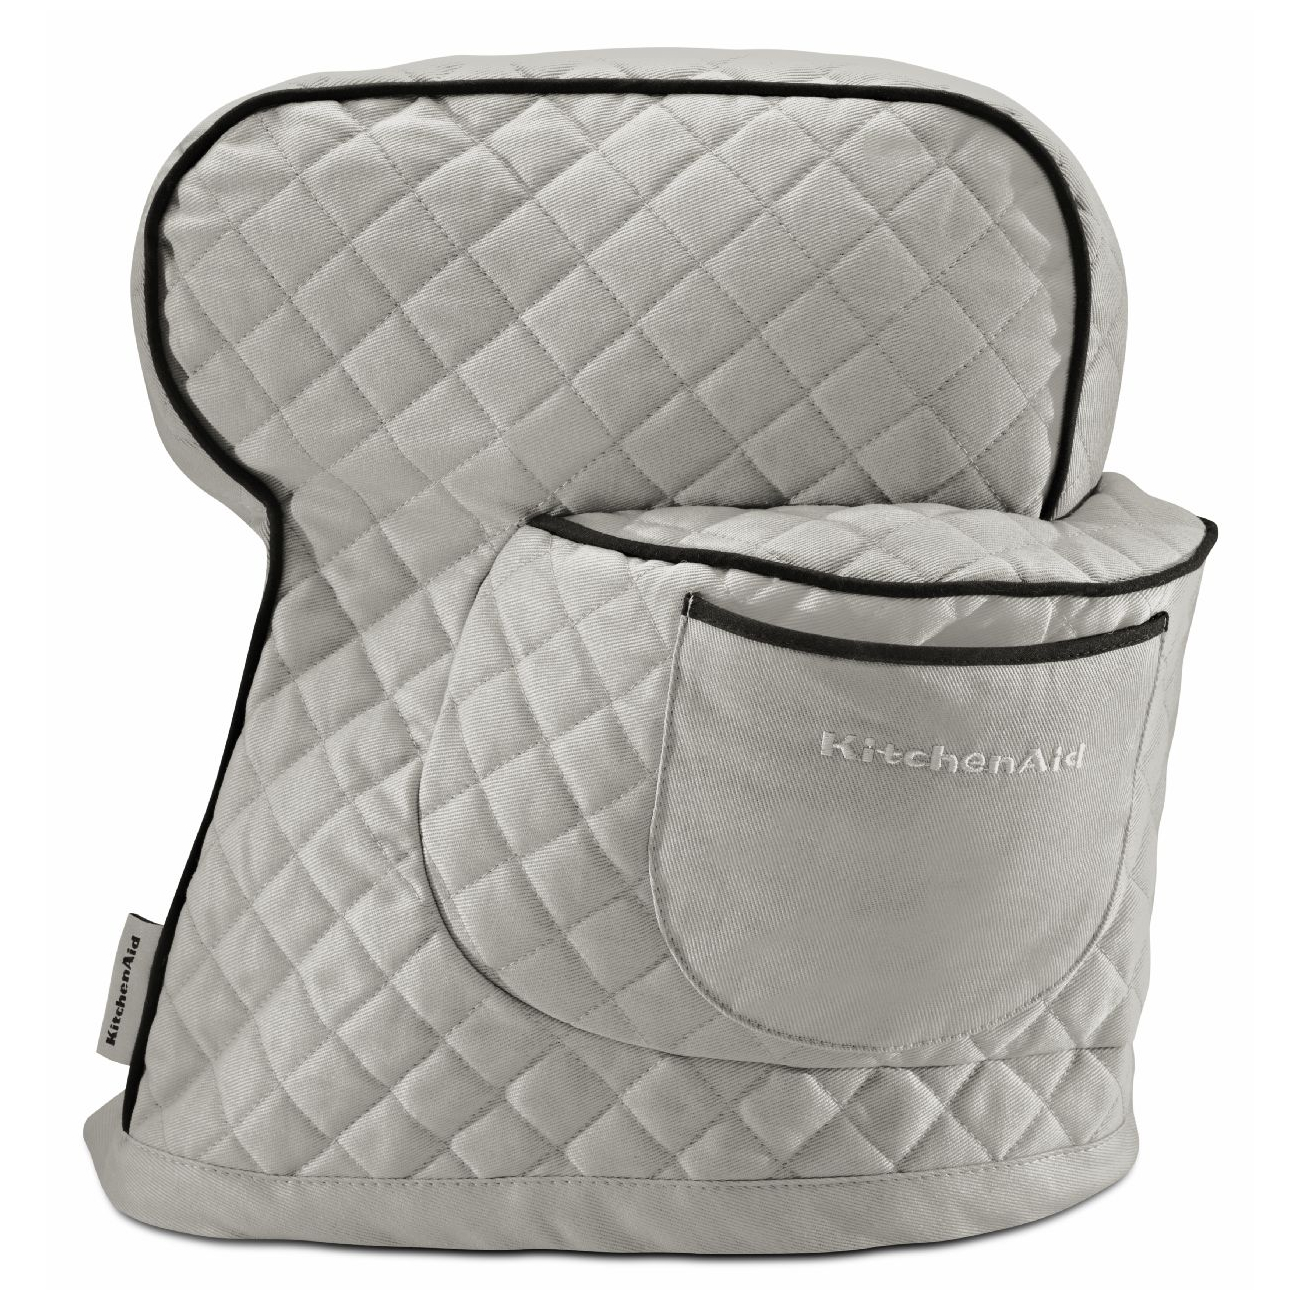 KitchenAid Silver Frost 100% Cotton Fitted Stand Mixer Cover